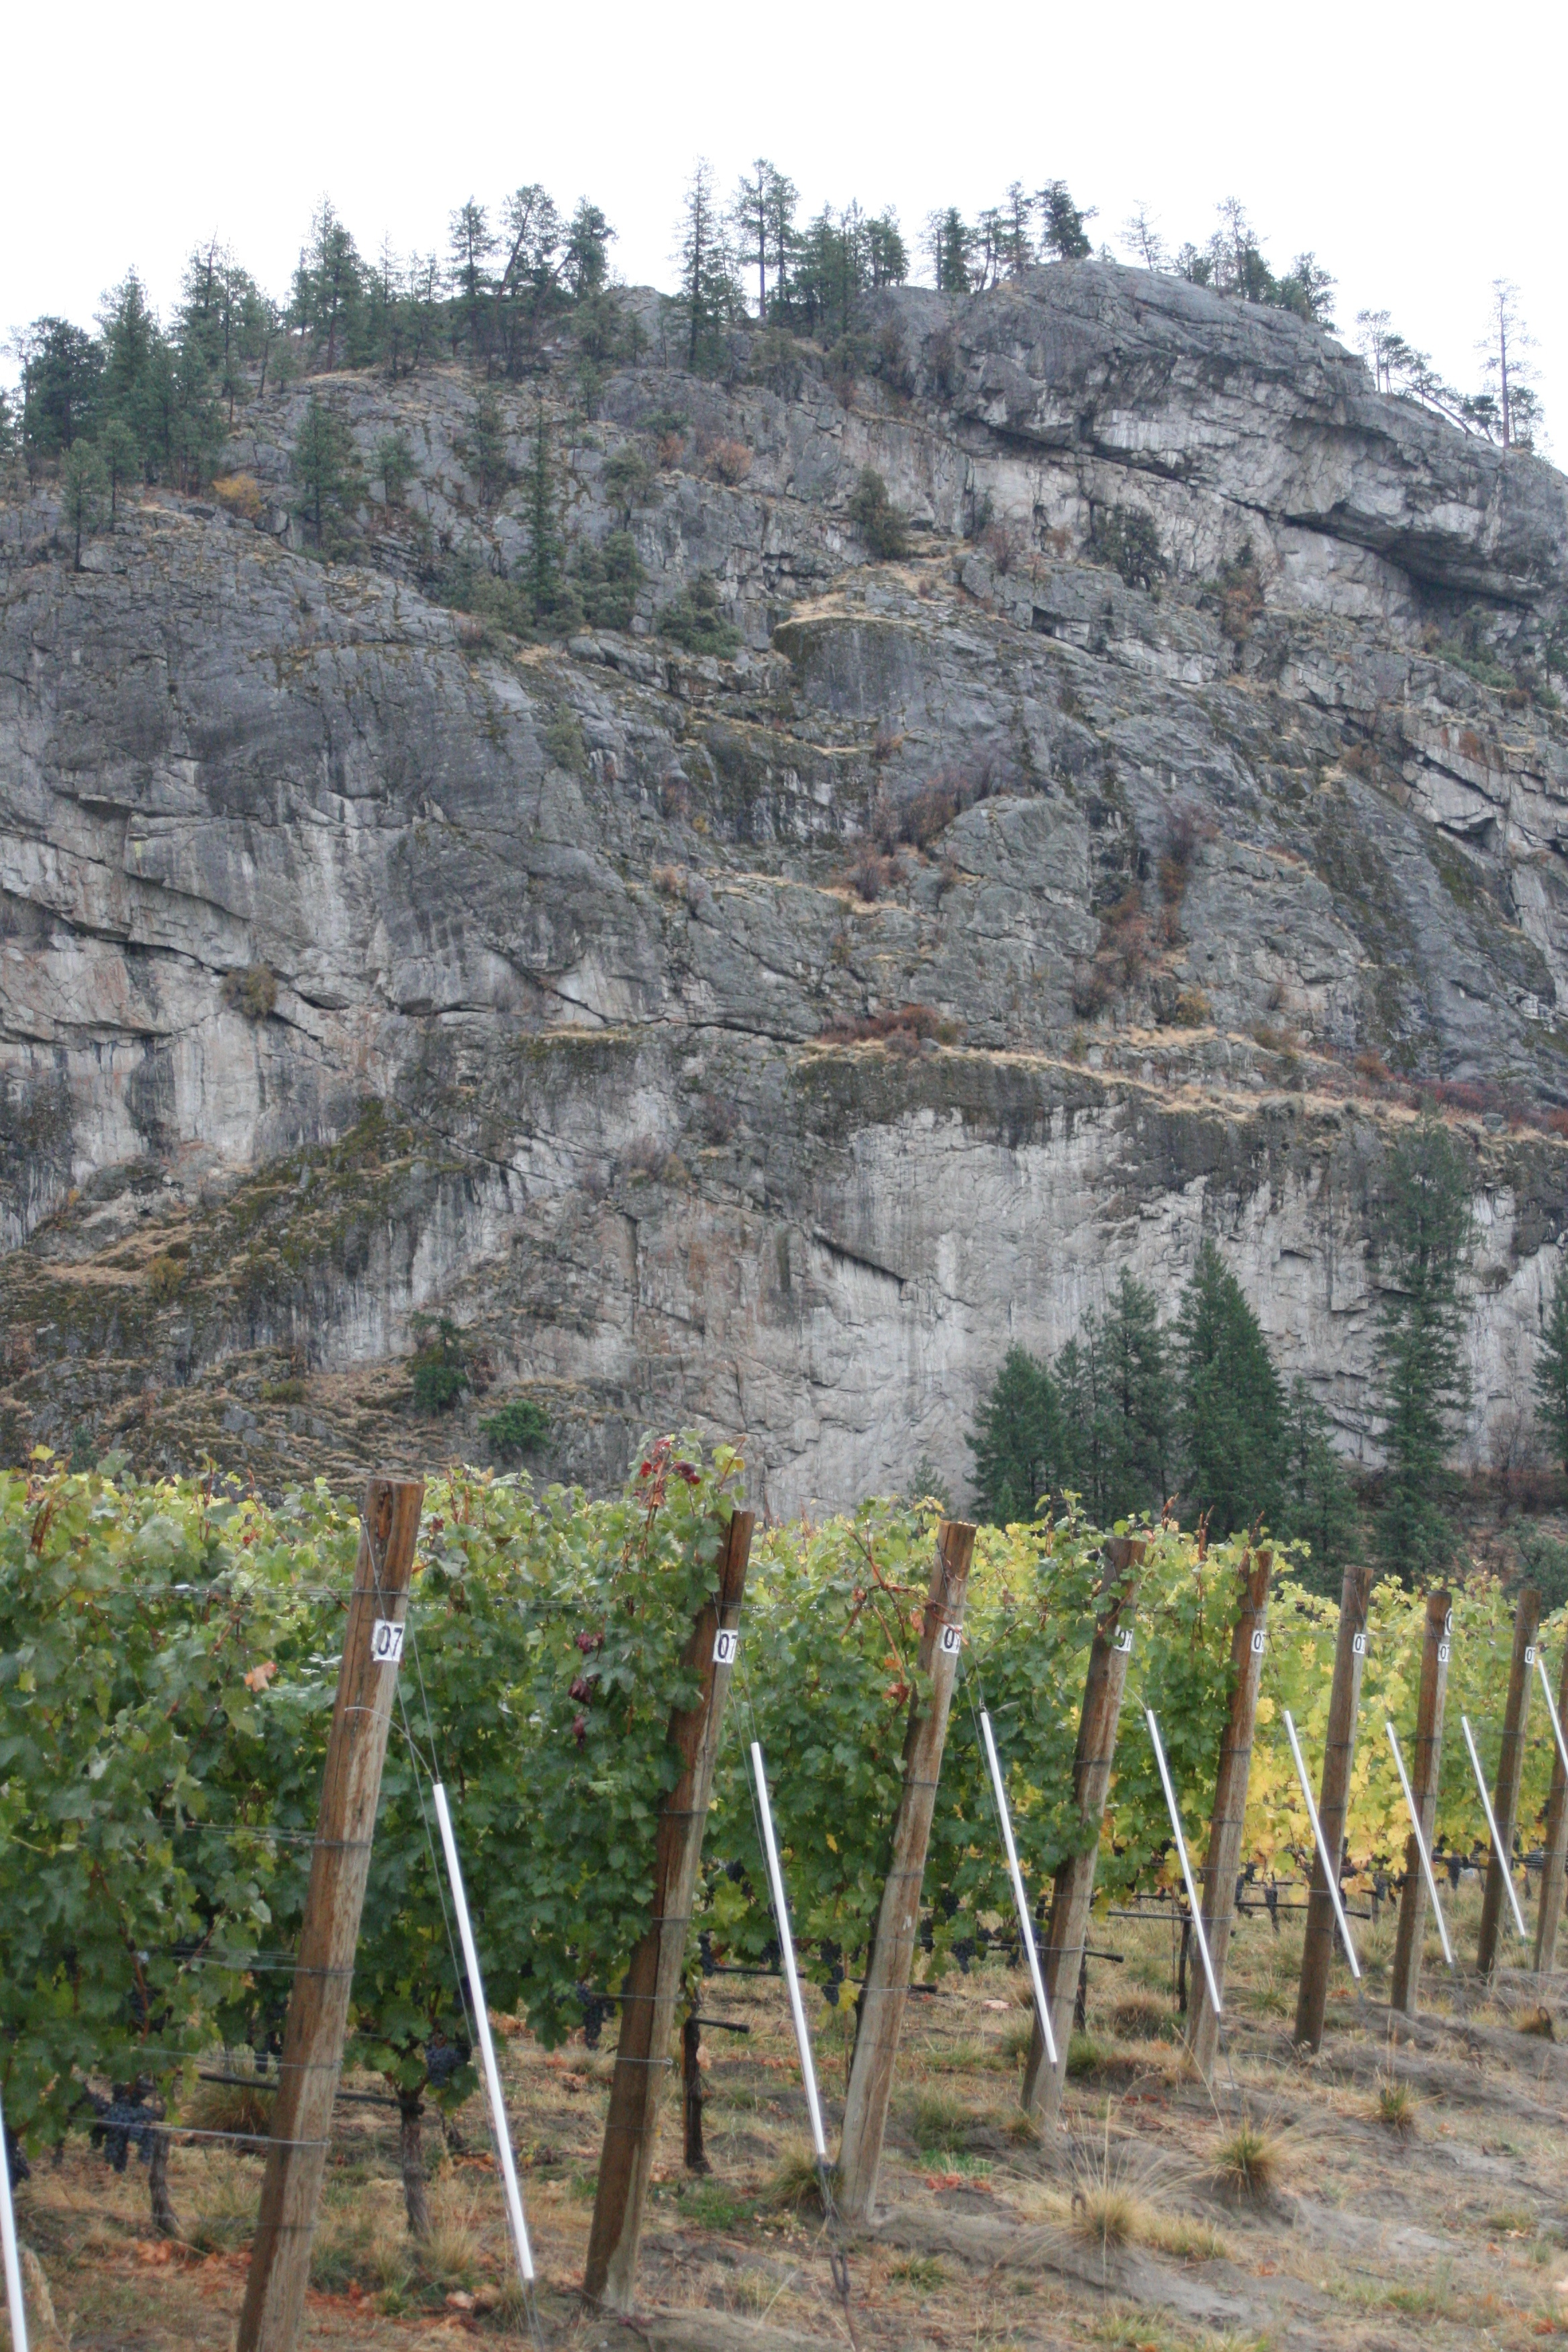 Vineyard against the rock wall of the Skaha Bluffs